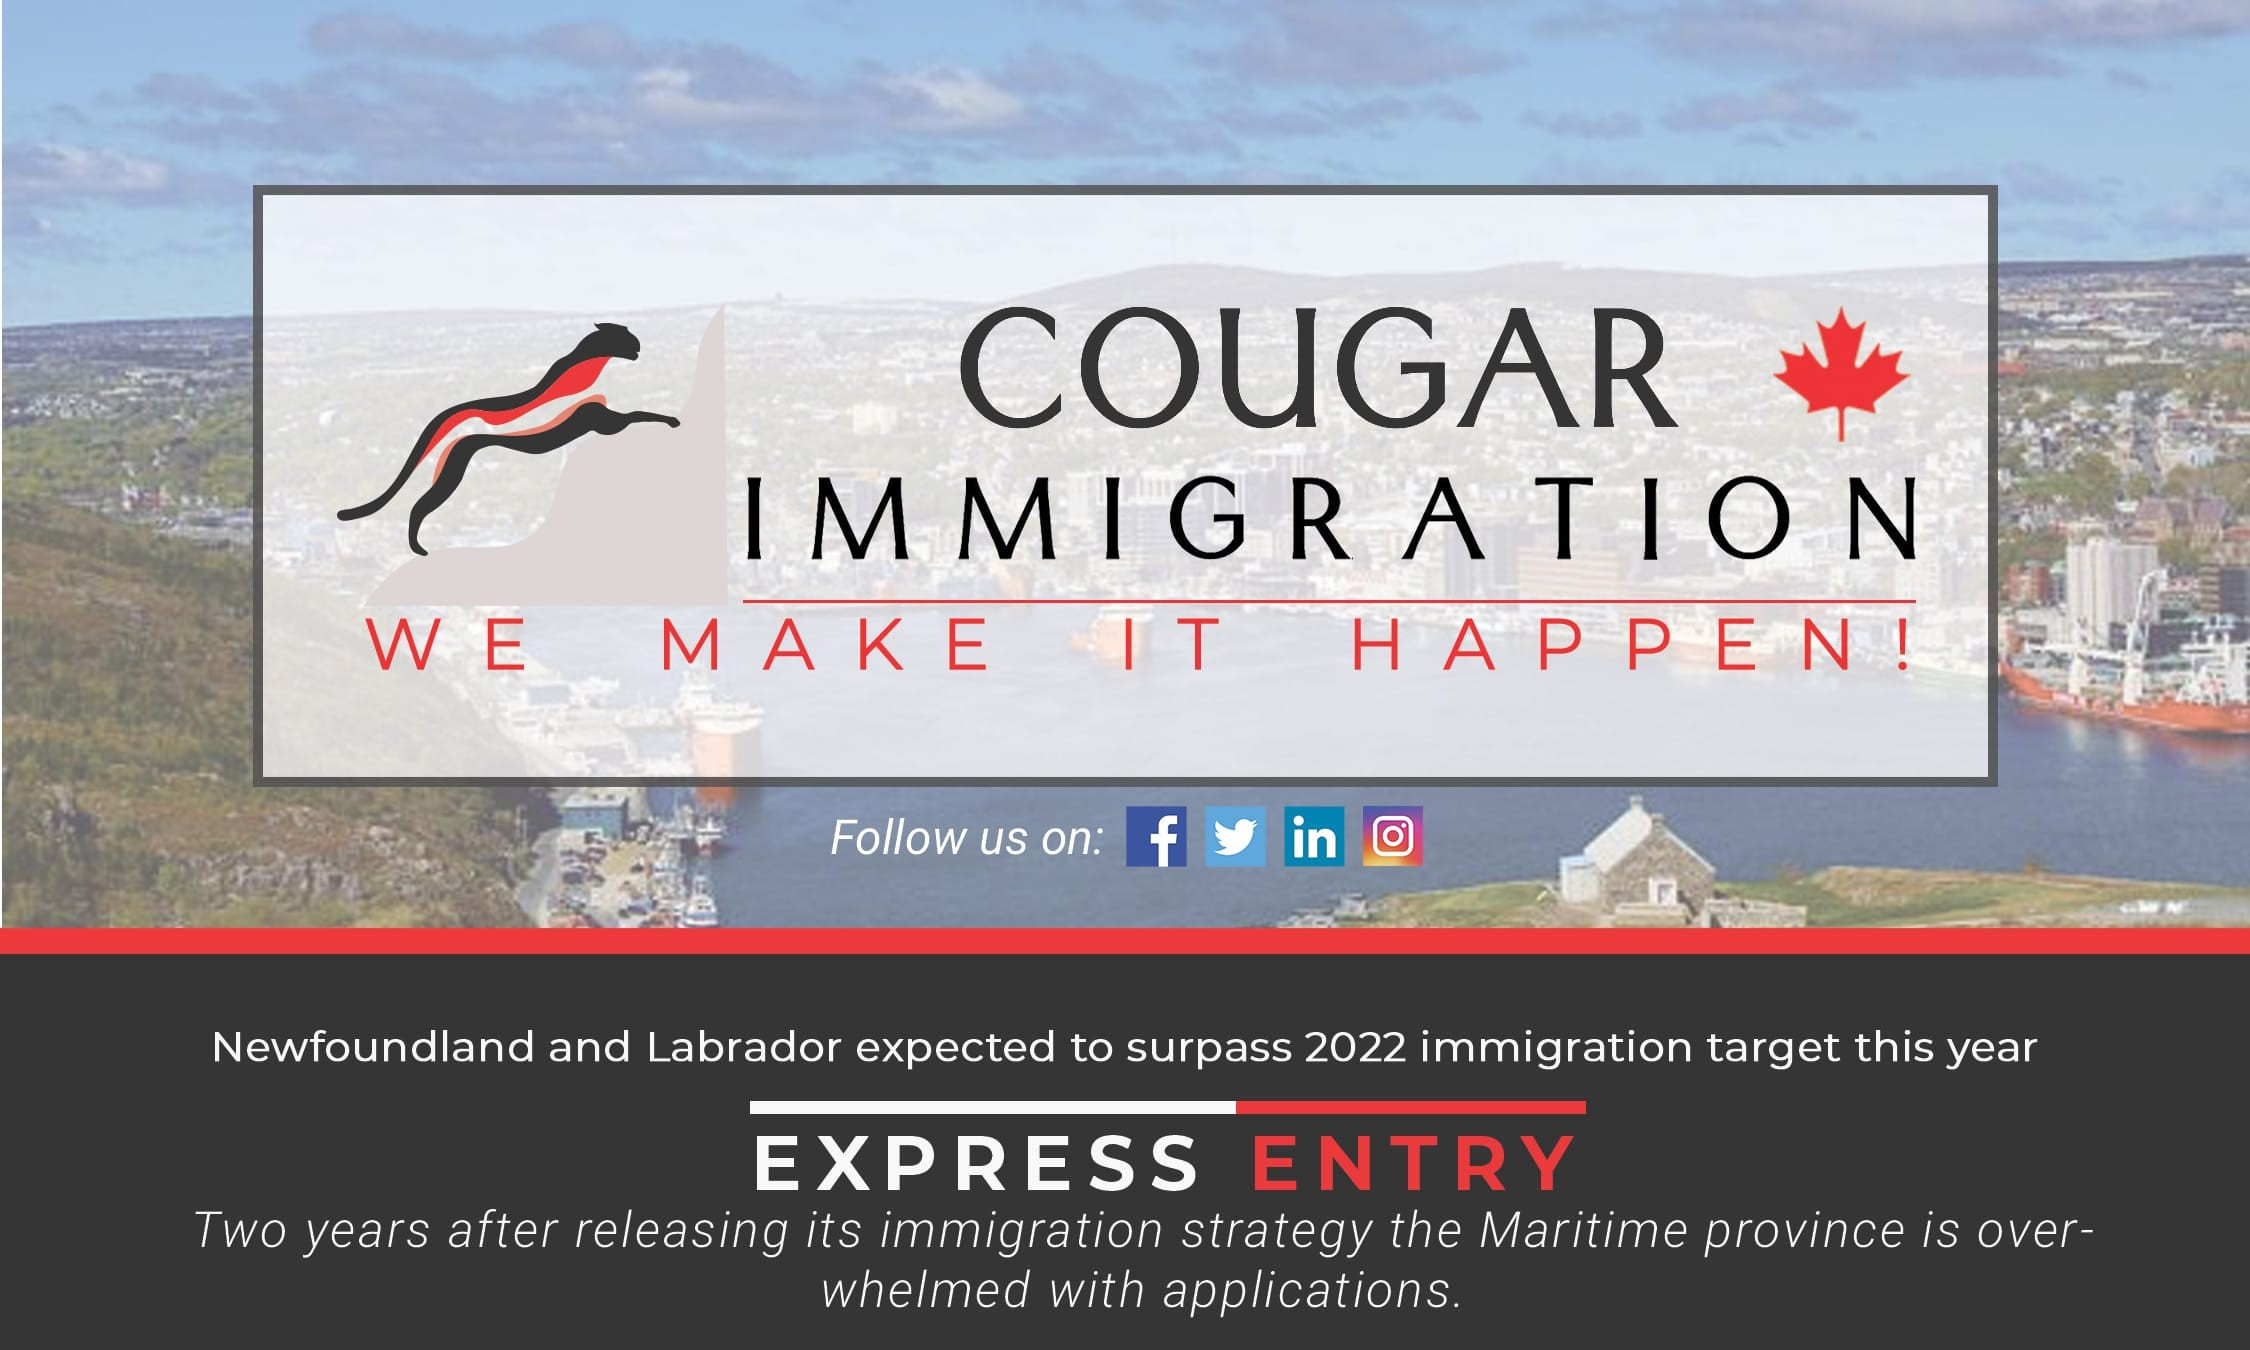 Newfoundland and Labrador expected to surpass 2022 immigration target this year thumbnail